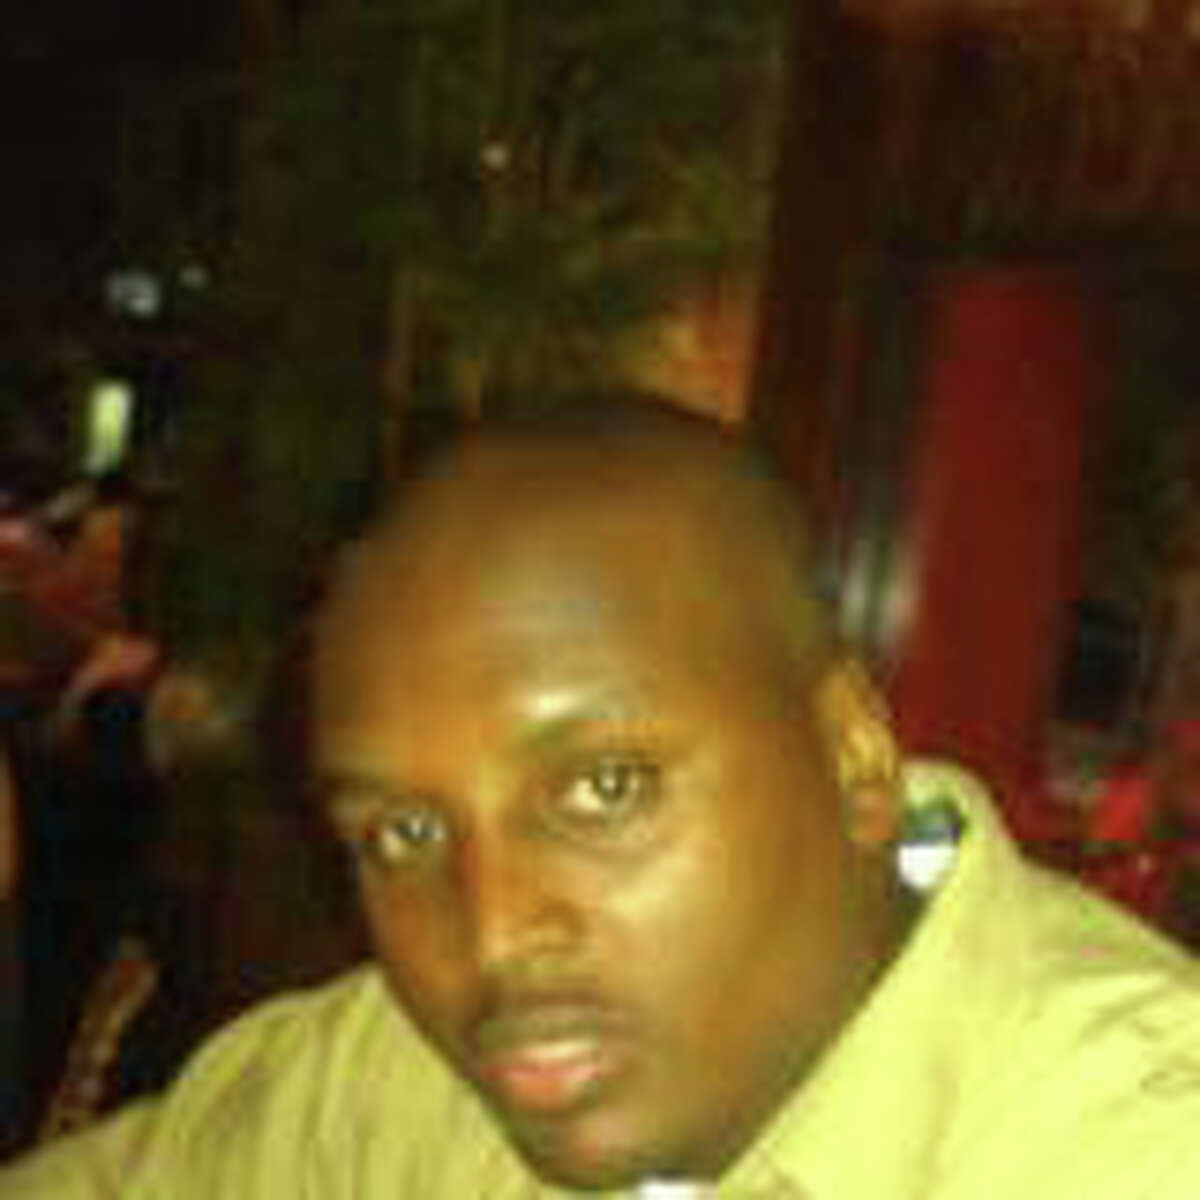 The man has been identified as Carnell Marcus Moore, 29. (Facebook photo)